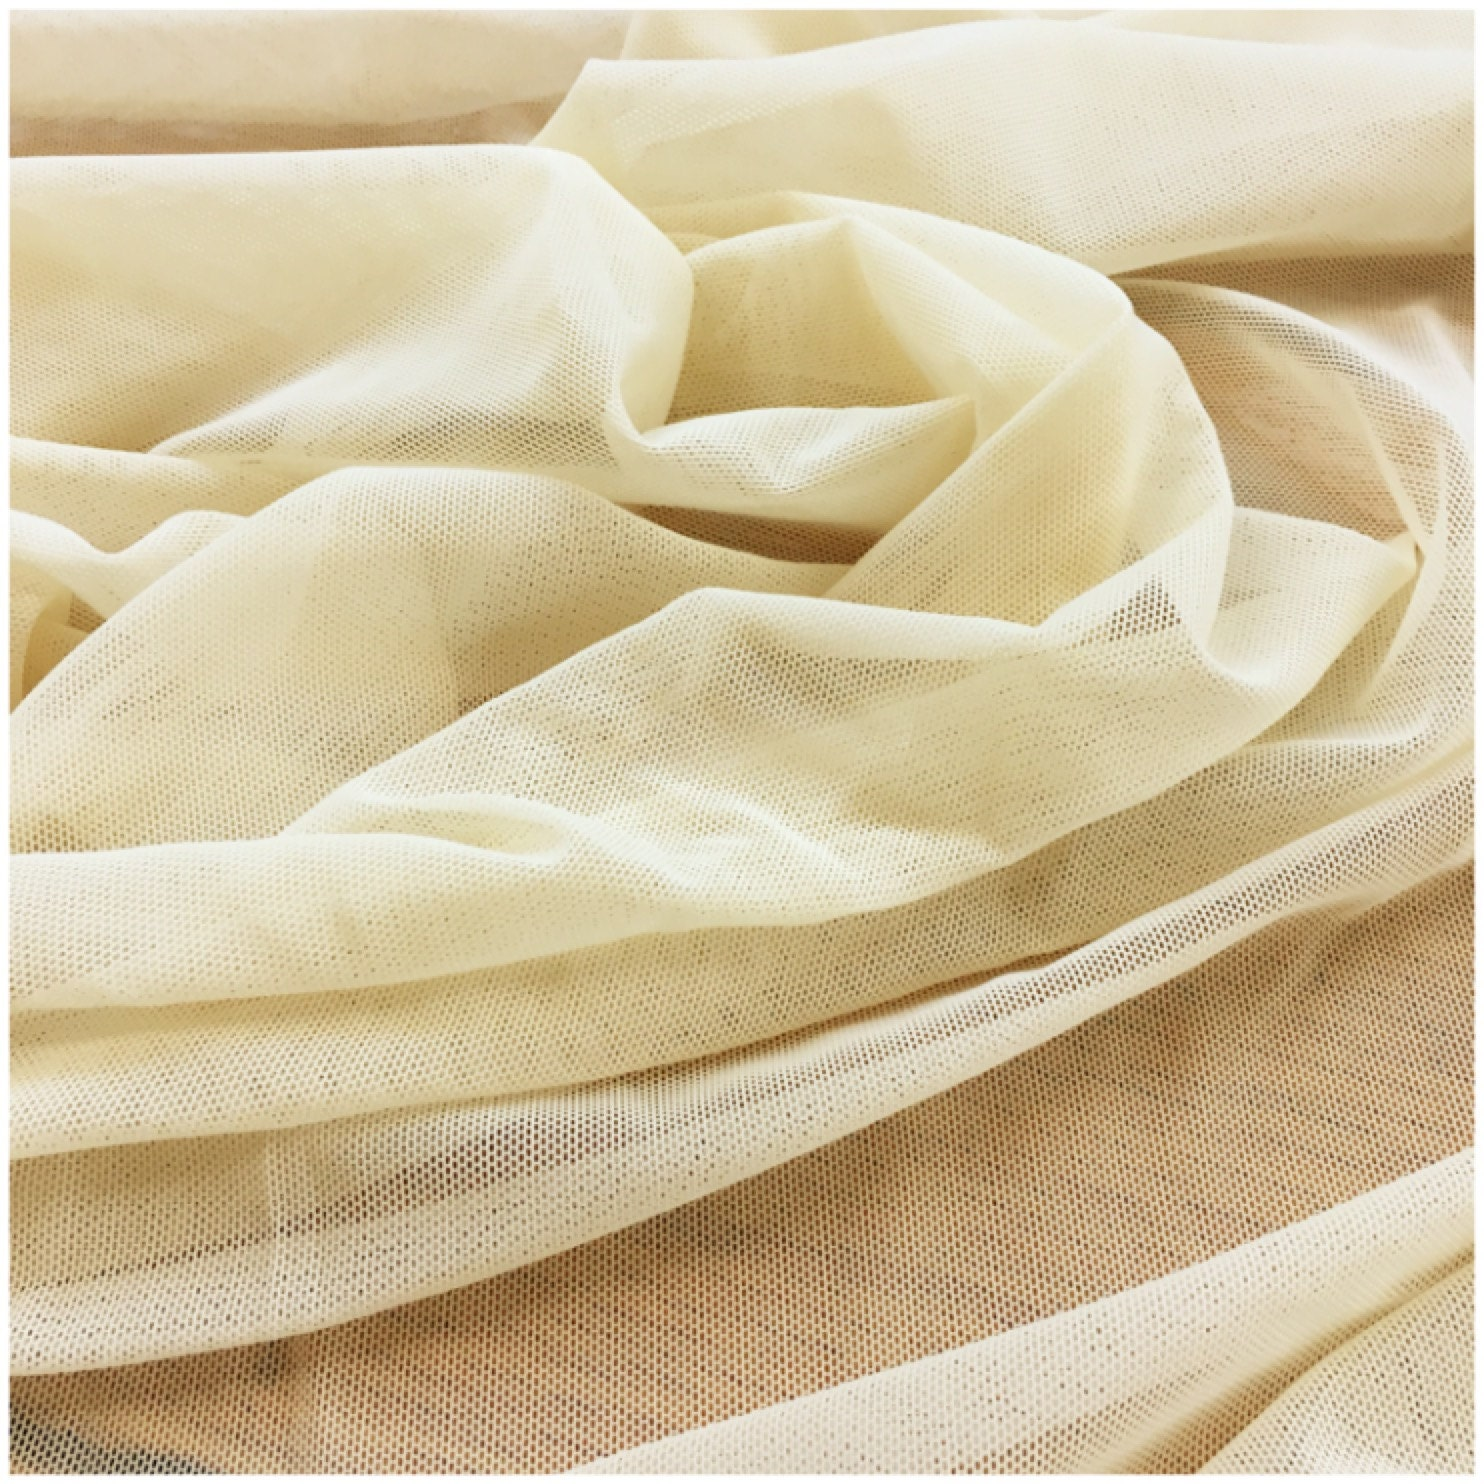 POLY NYLON MESH STRETCH FABRIC NUDE BY THE YARD 1/4 INCH